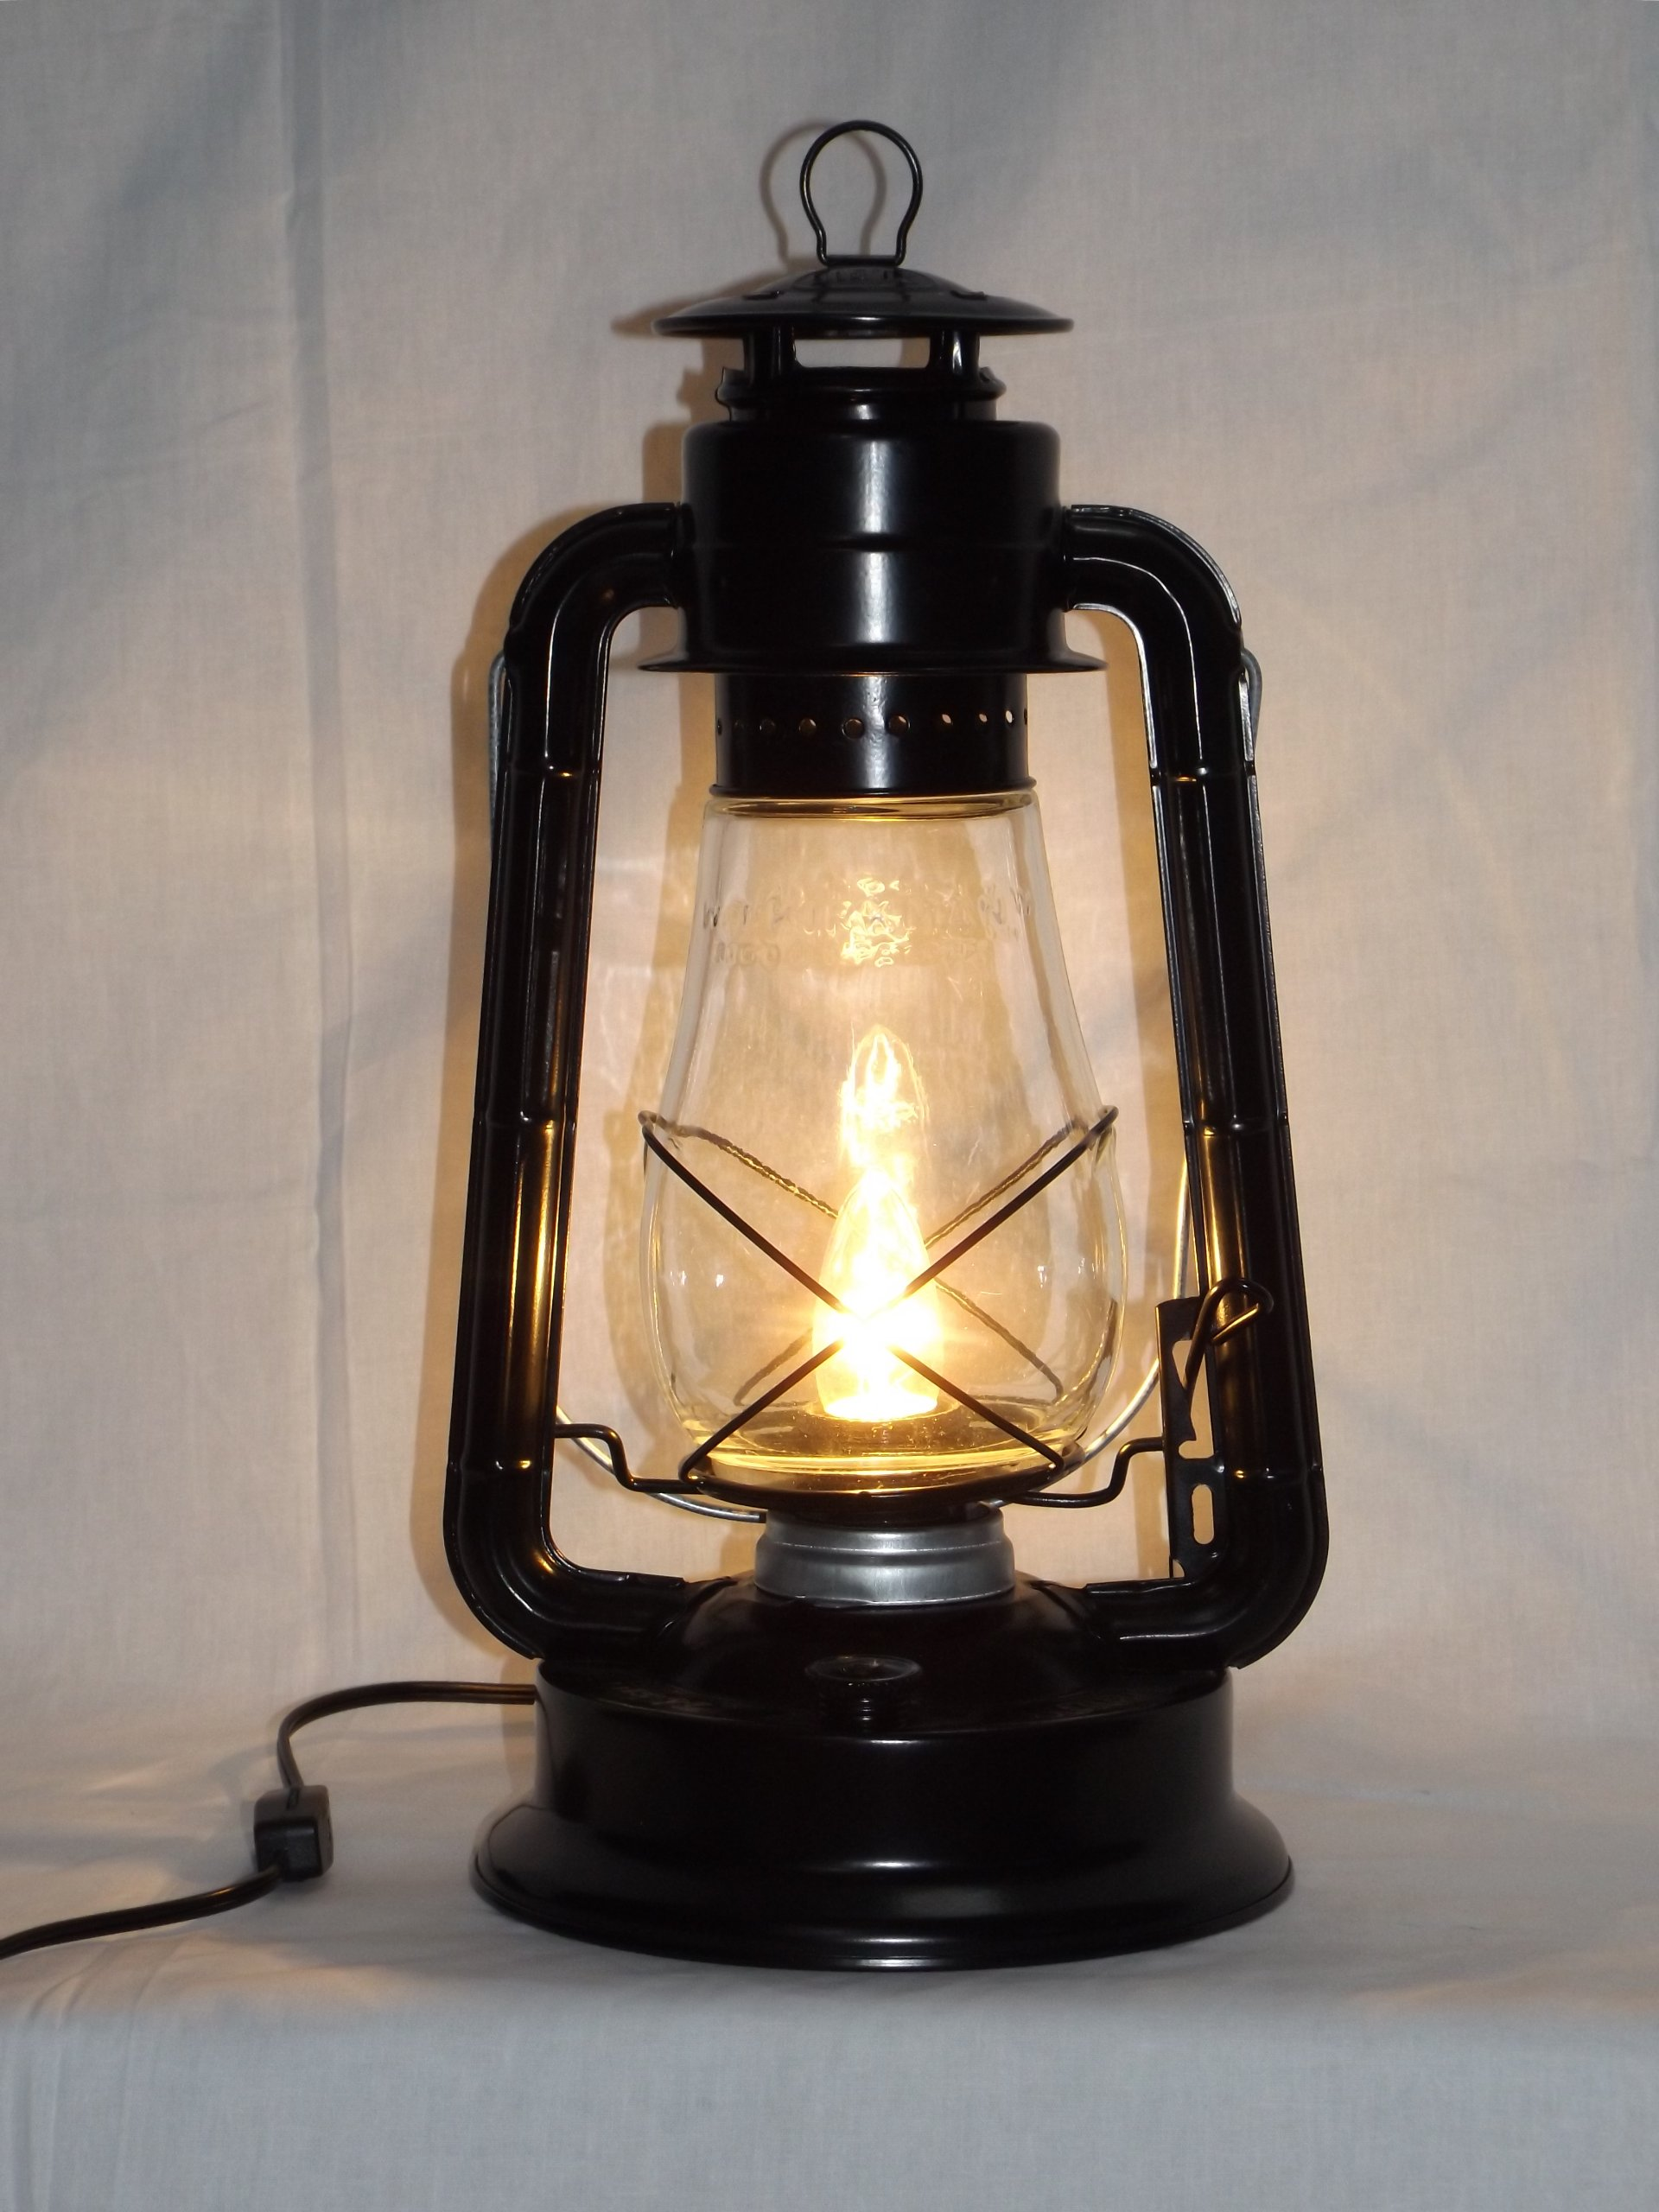 Dietz Blizzard Vintage Style Electric Lantern Table Lamp